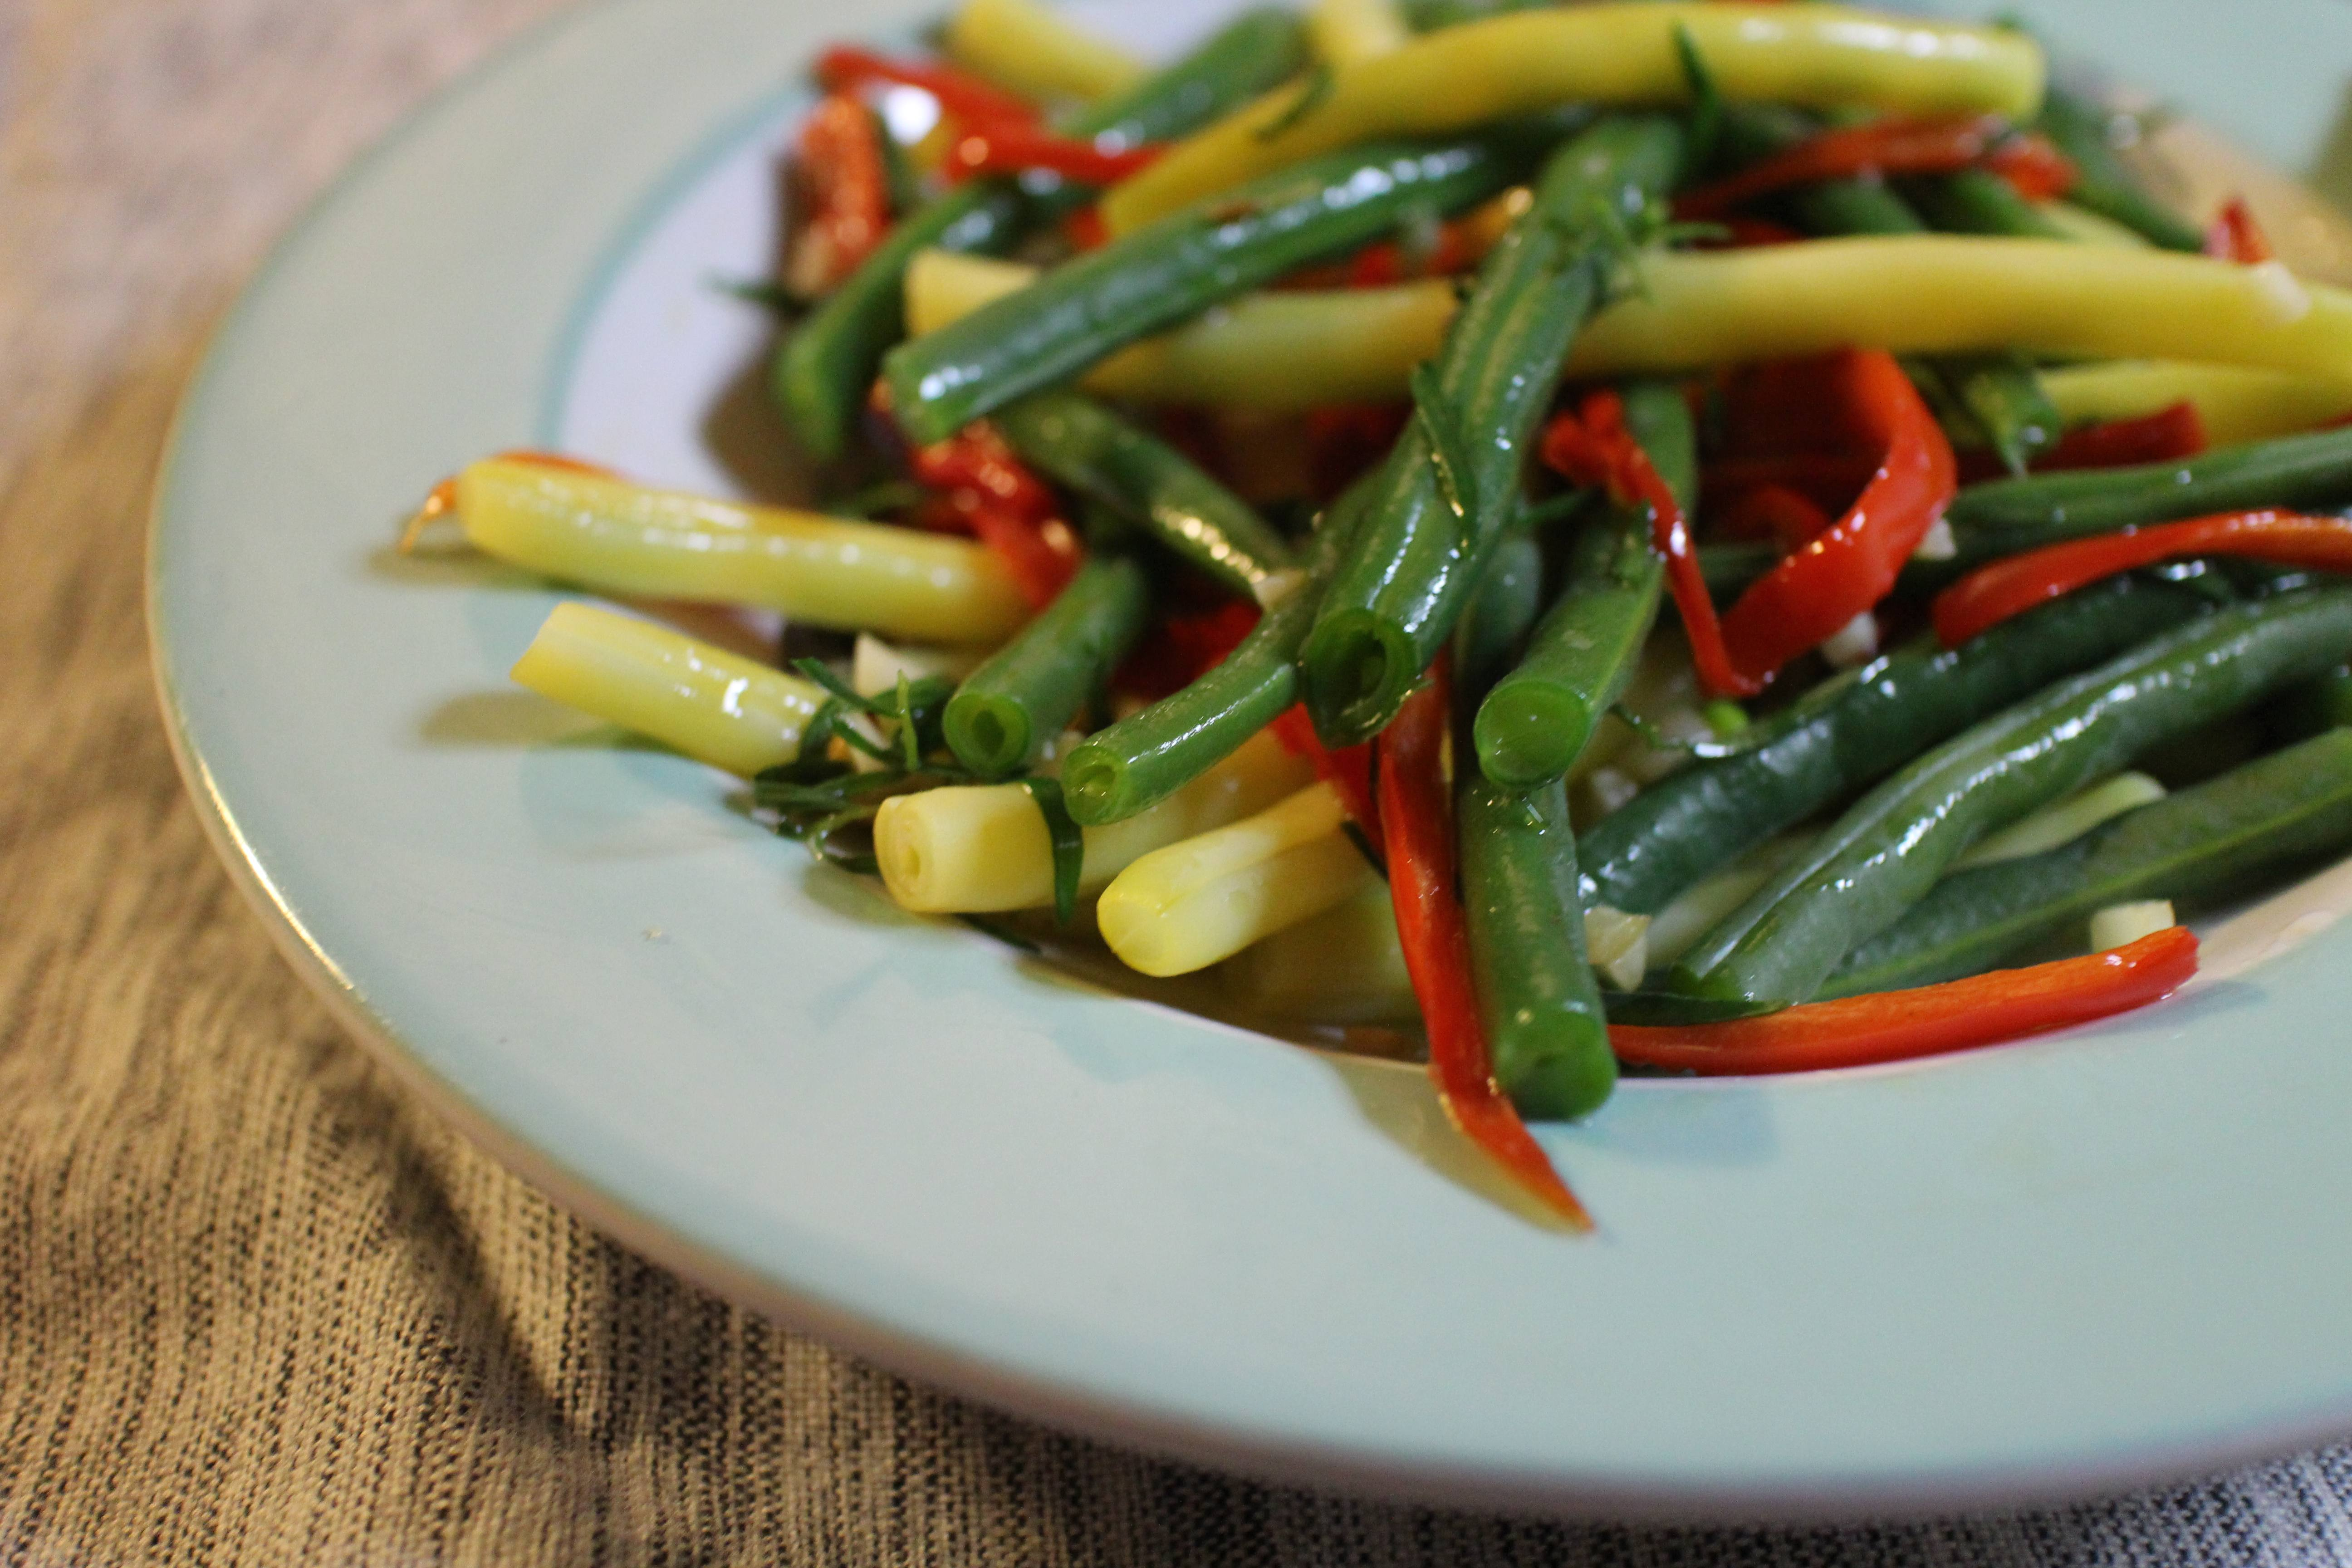 ... blackened green beans with red crispy green beans change roasted green